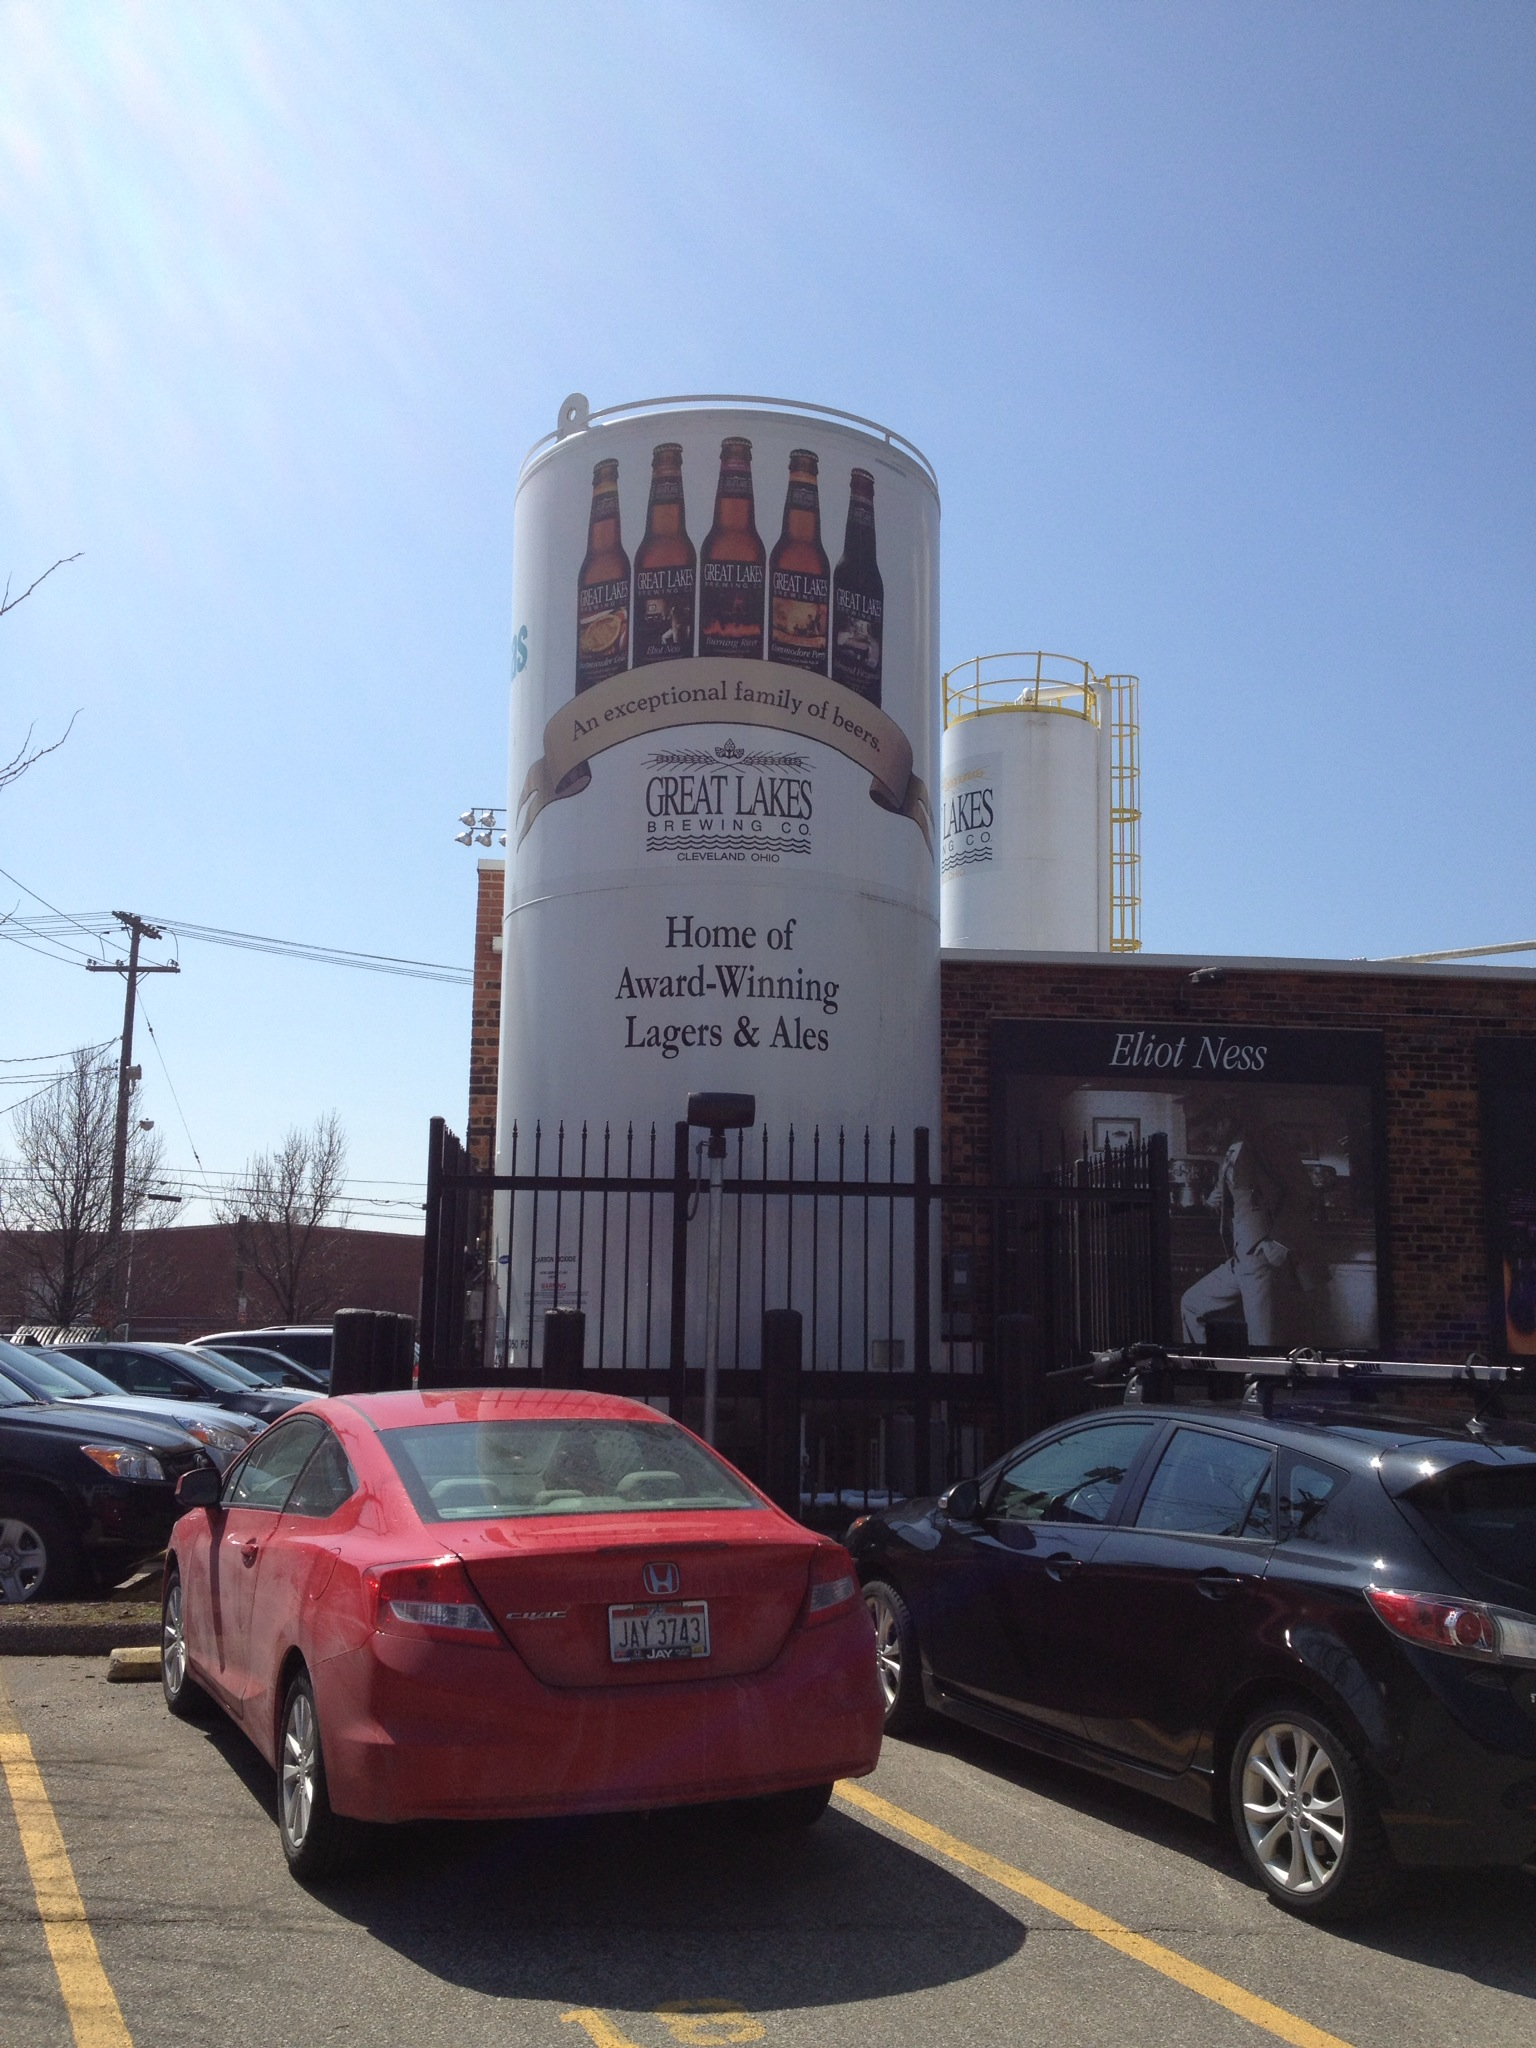 Great Lakes Brewing Award Winning Lagers